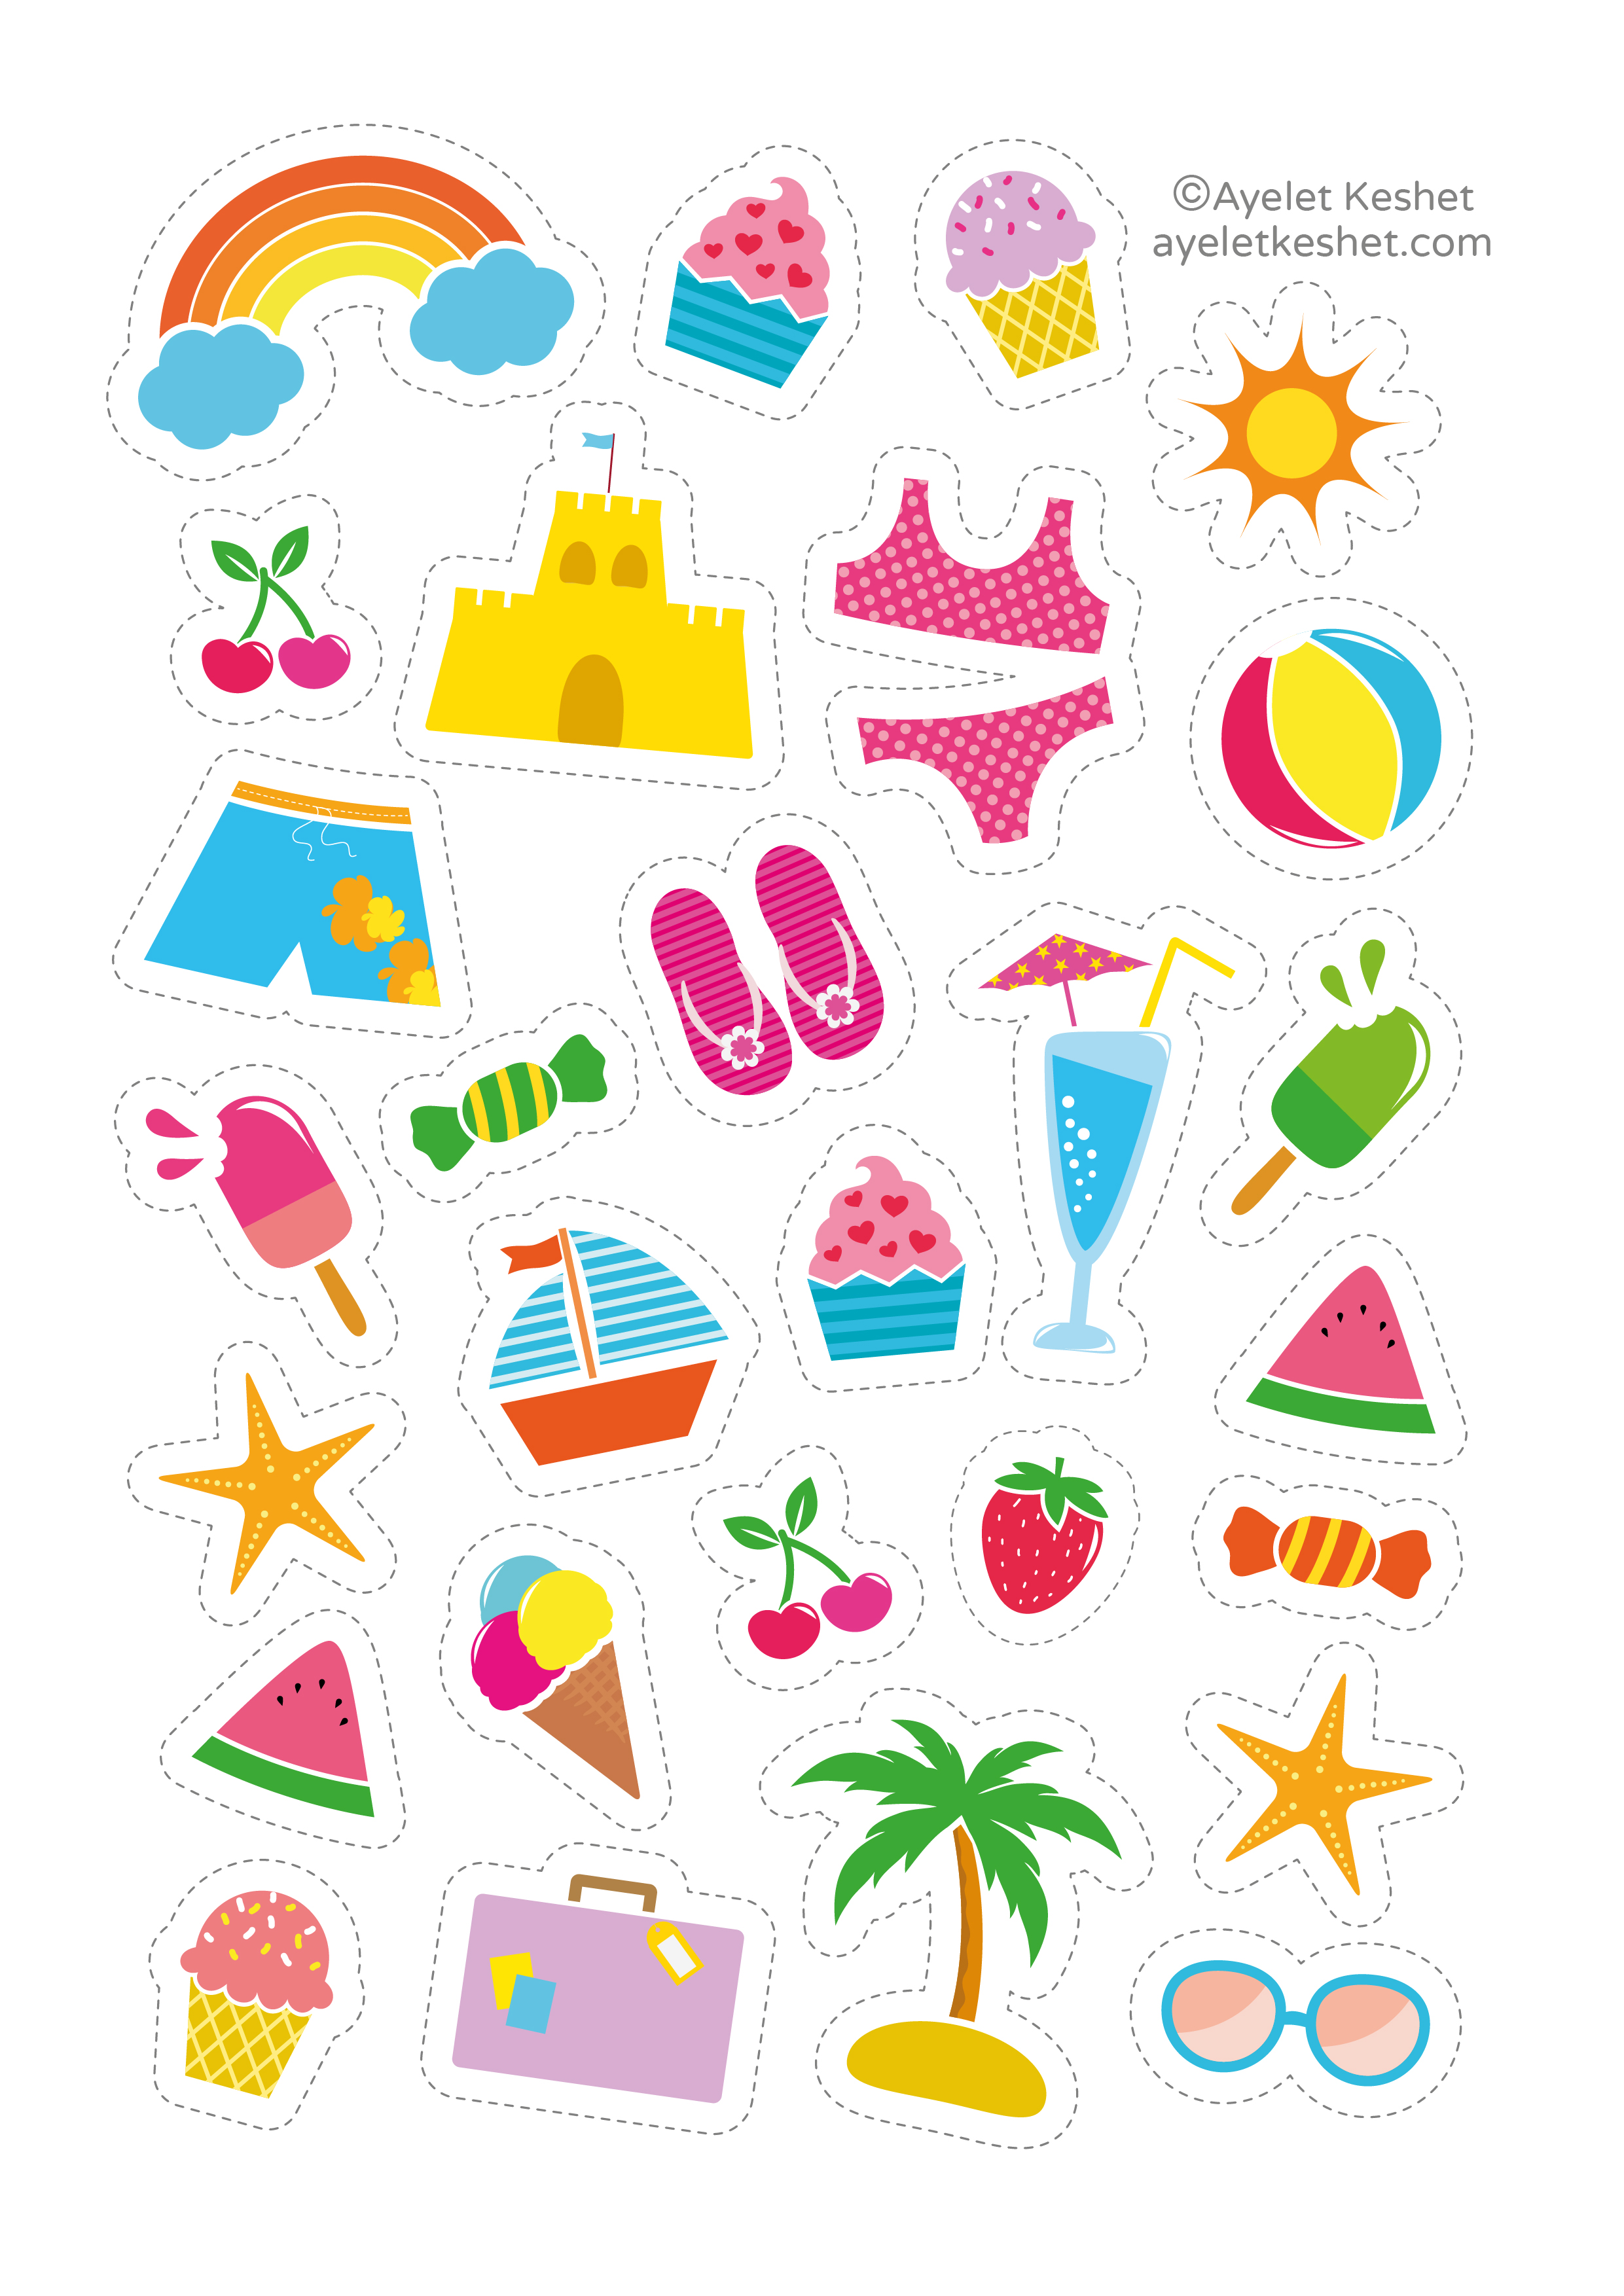 graphic regarding Cute Printable Stickers identified as Free of charge printable stickers - Ayelet Keshet